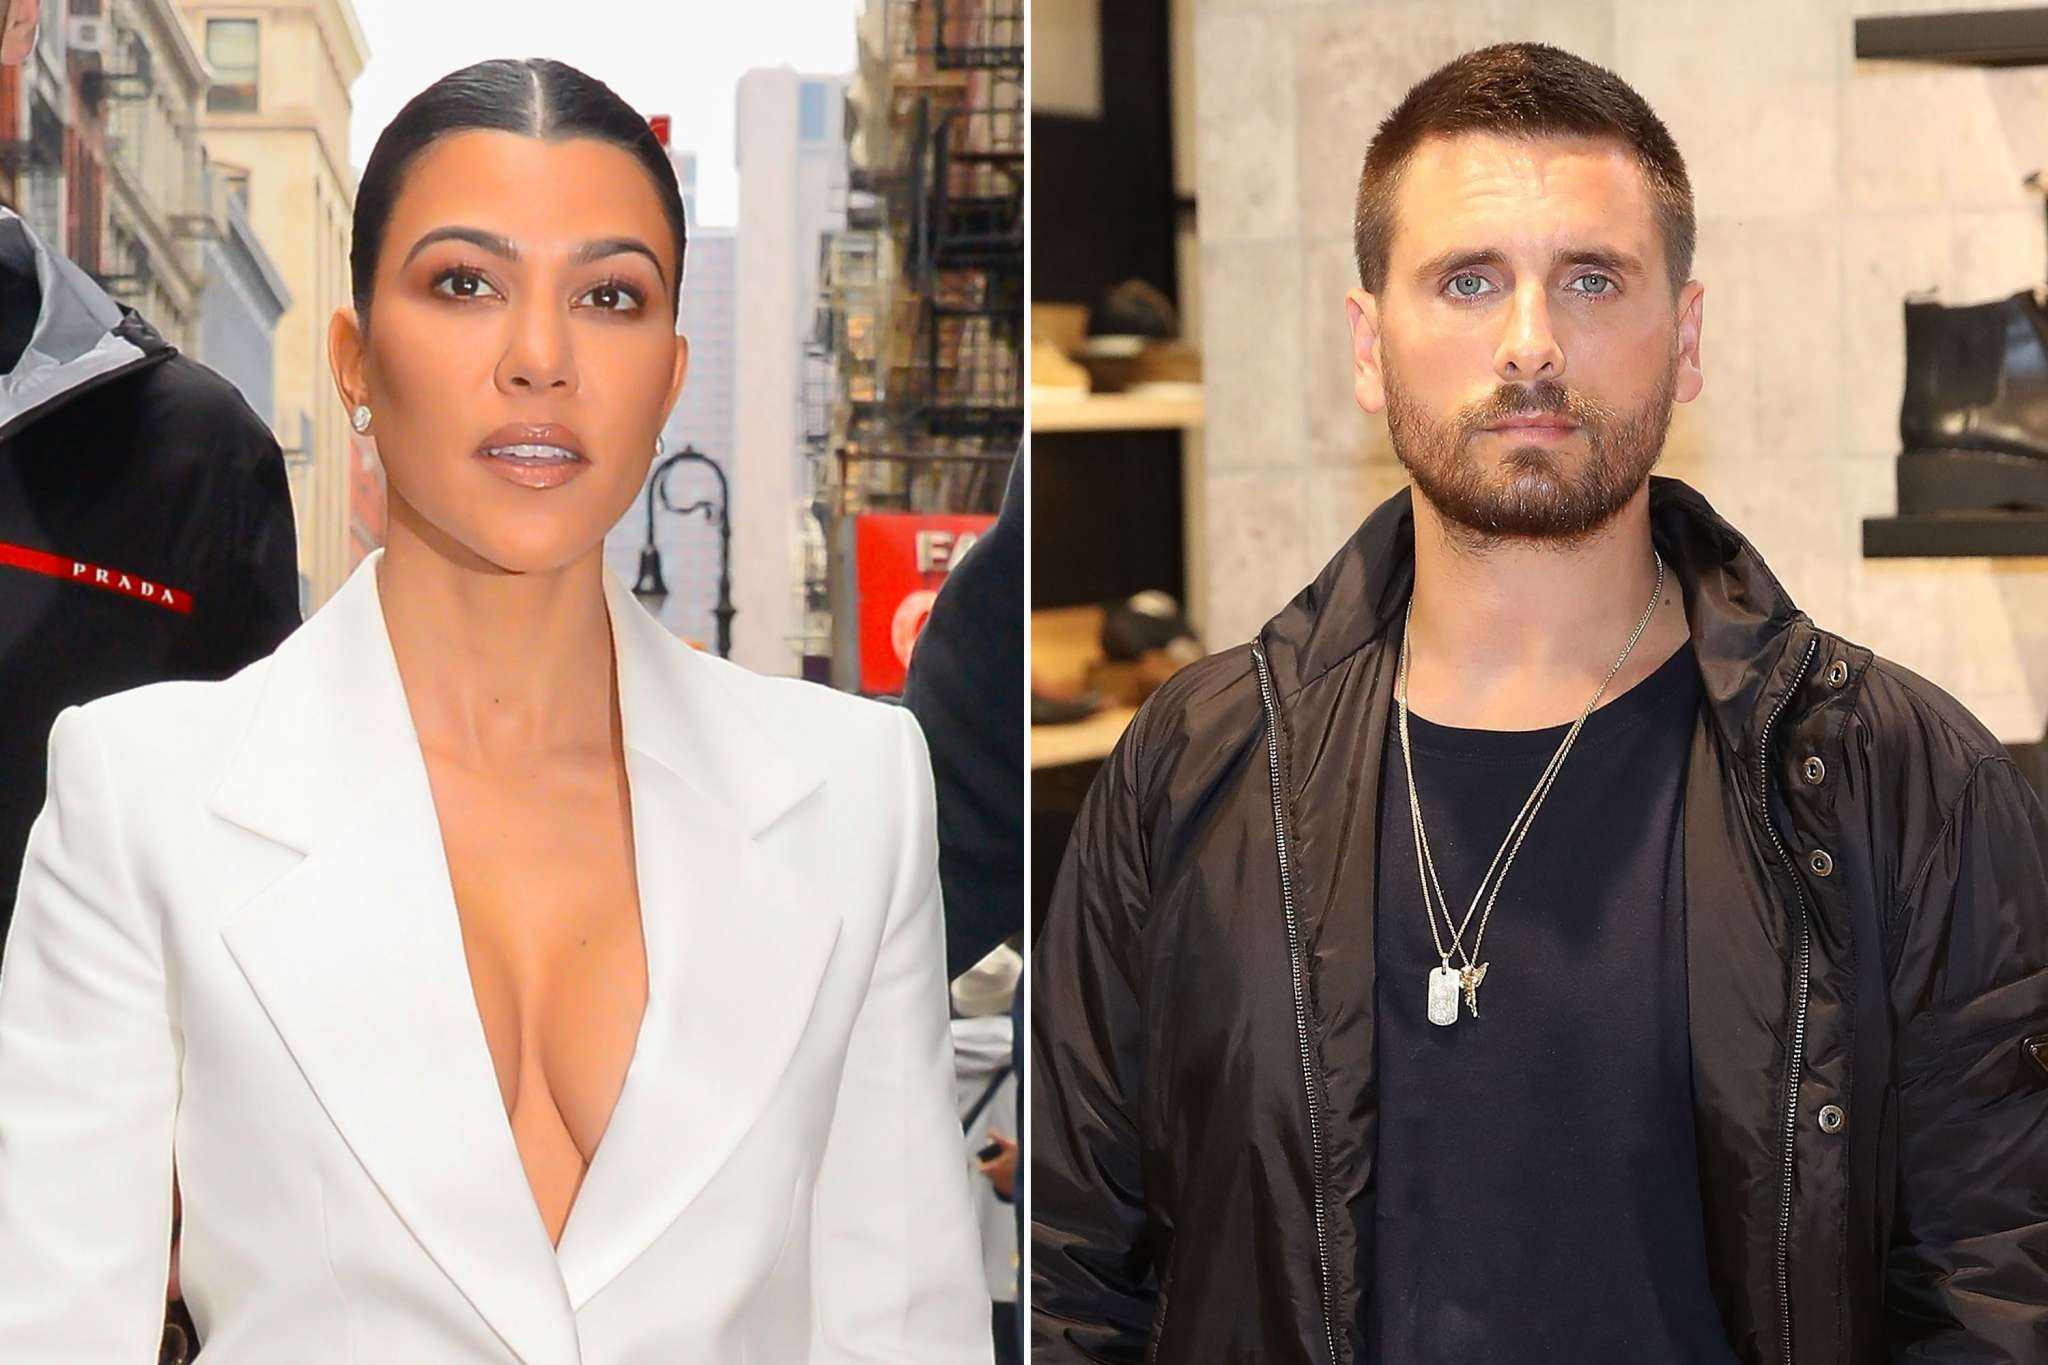 kuwtk-kourtney-kardashian-reveals-the-reason-why-she-wont-get-back-together-with-scott-disick-video